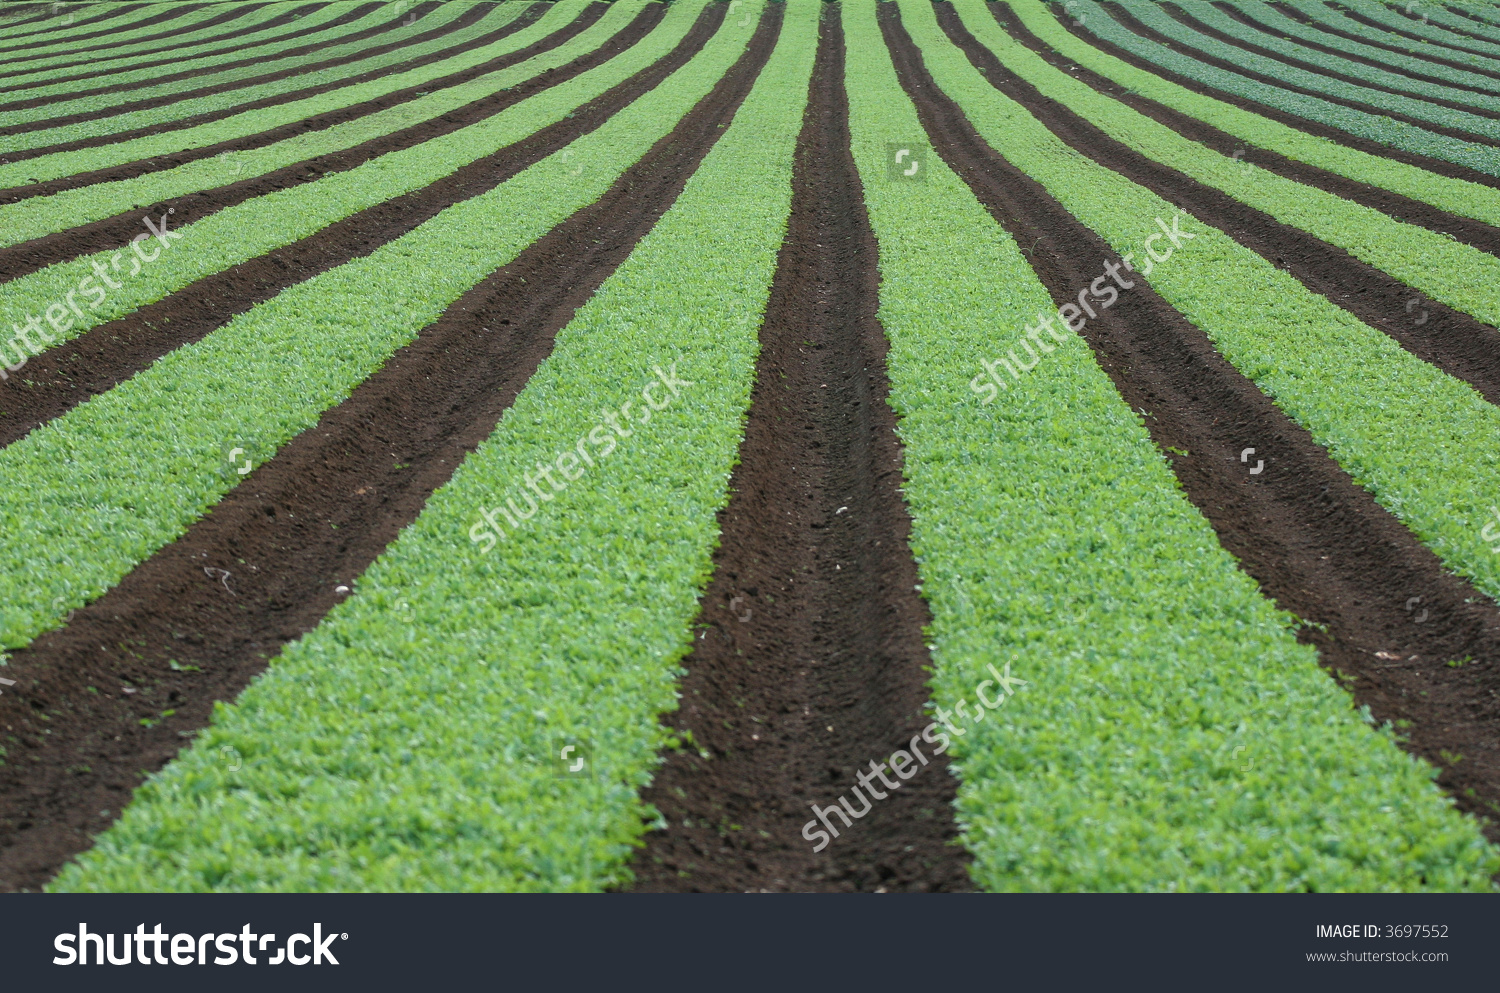 Garden row clipart vegetable svg freeuse stock Market Garden Rows Of Young Vegetables Stock Photo 3697552 ... svg freeuse stock